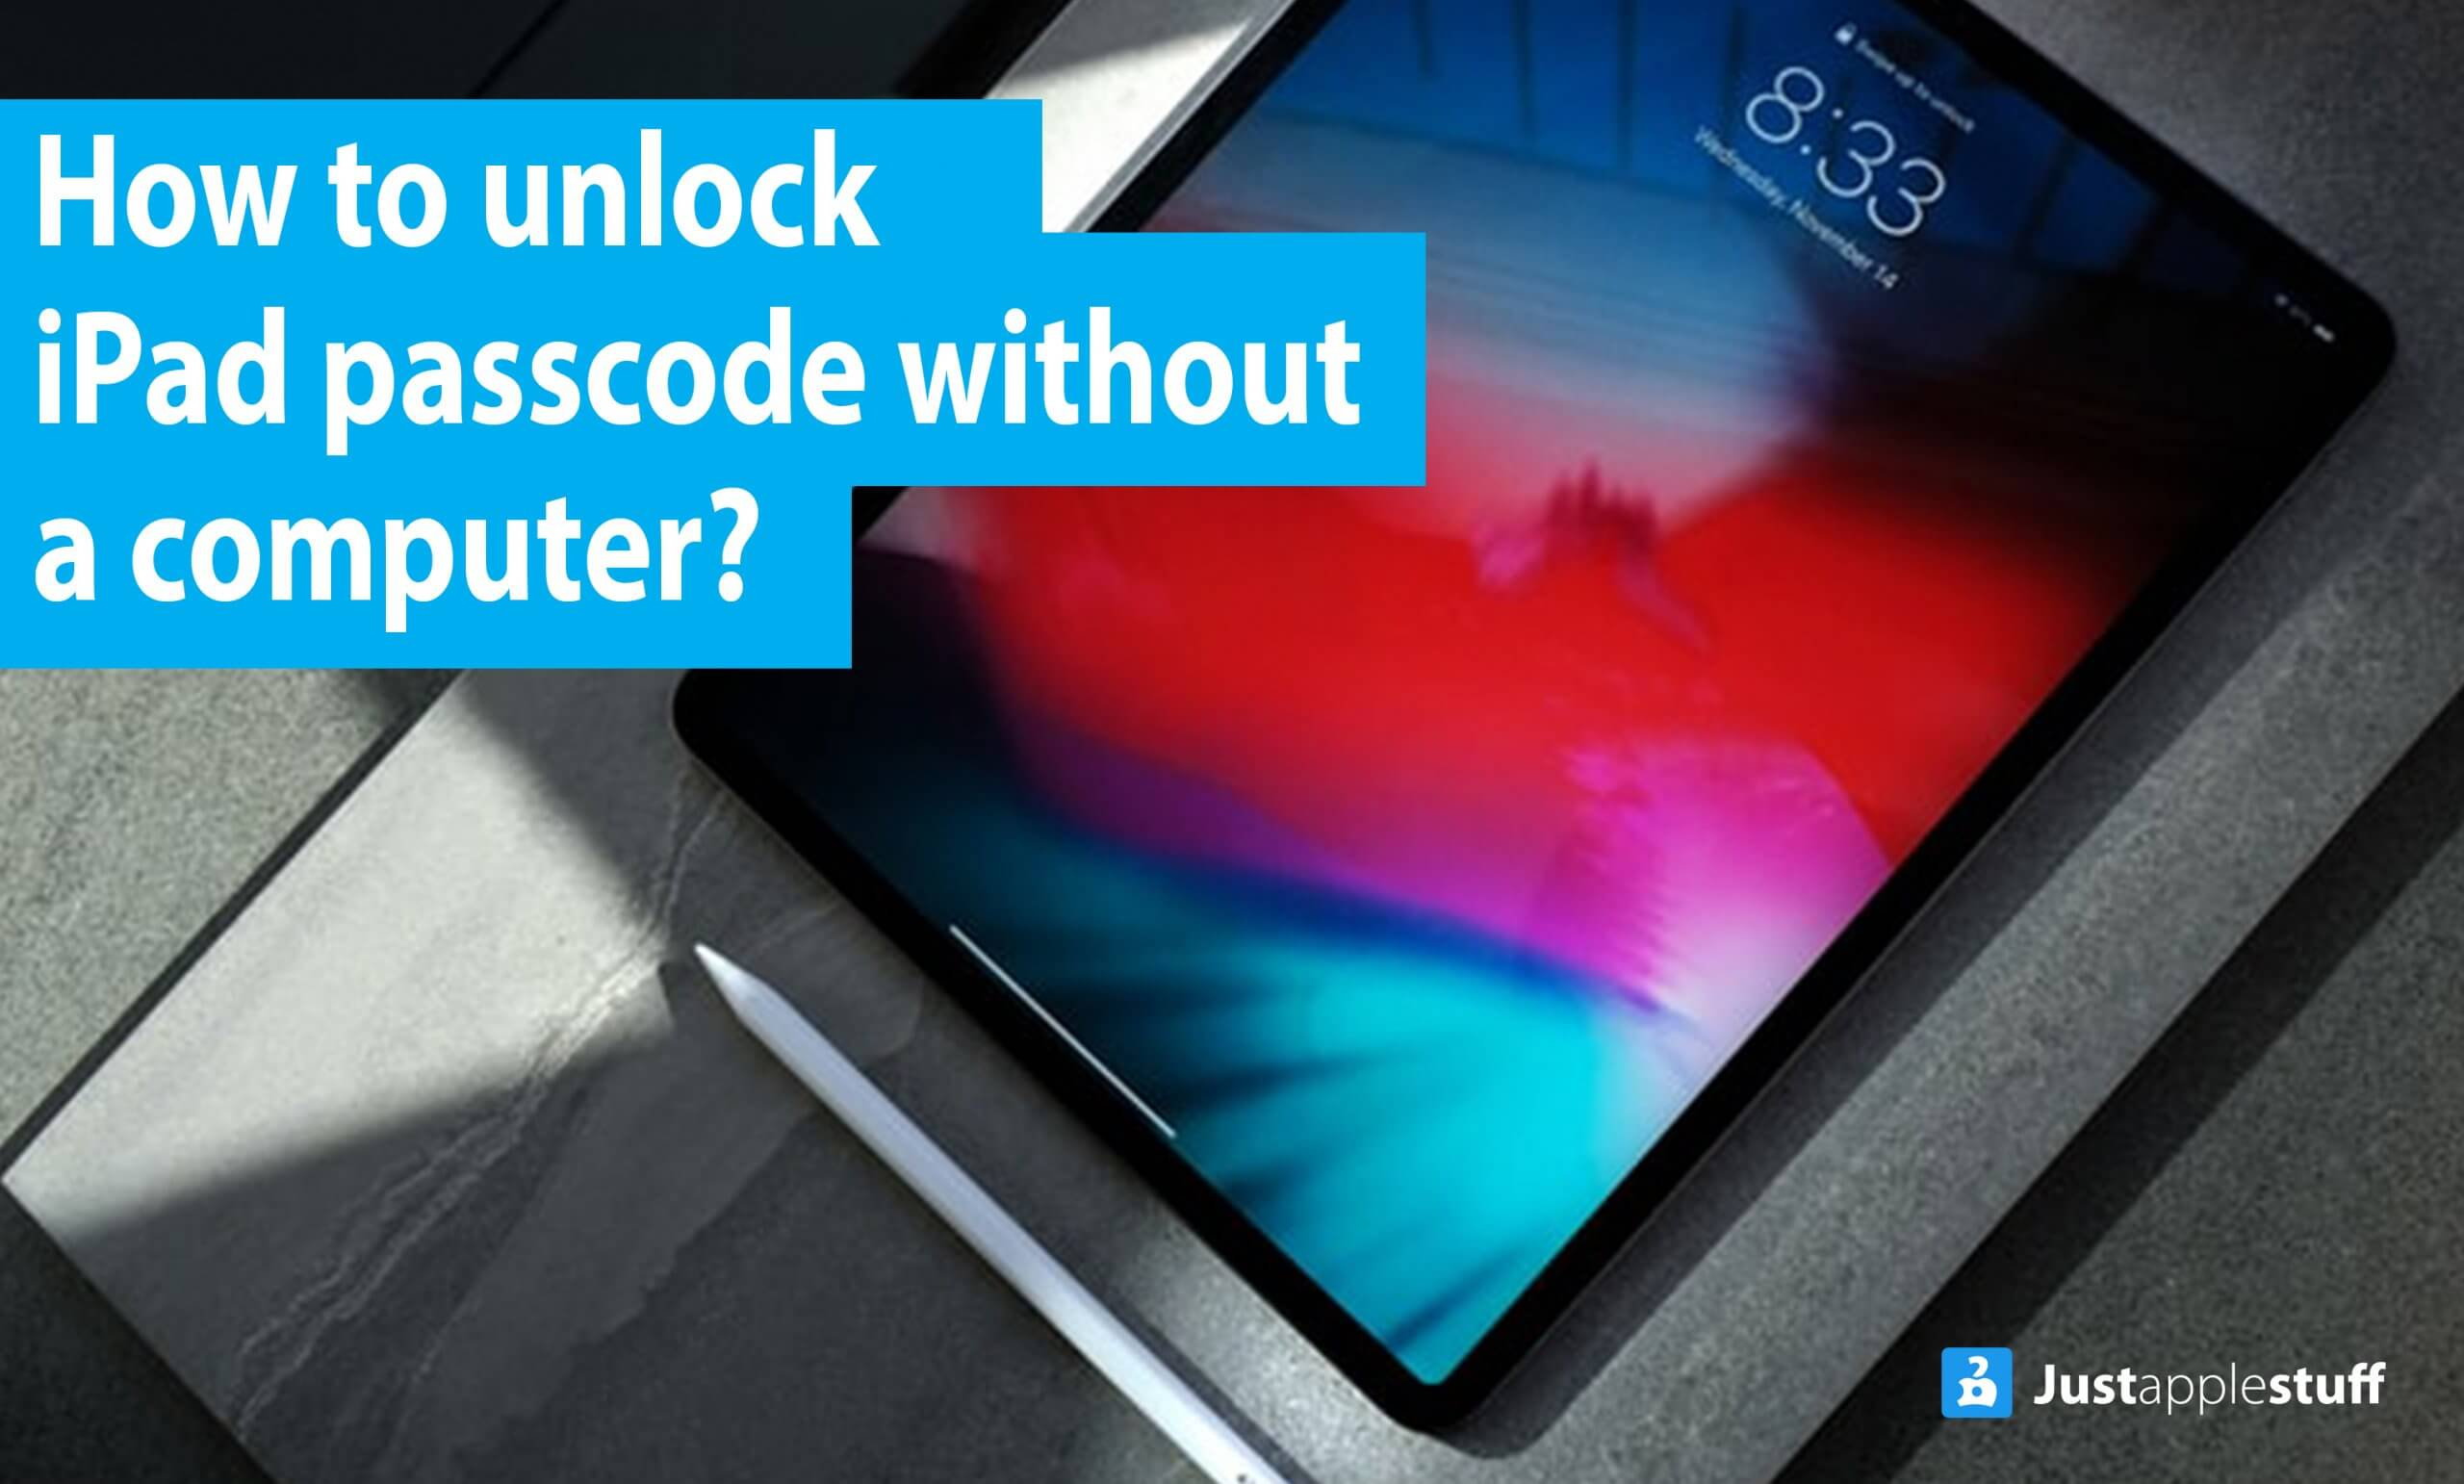 How to unlock an iPad passcode without a computer